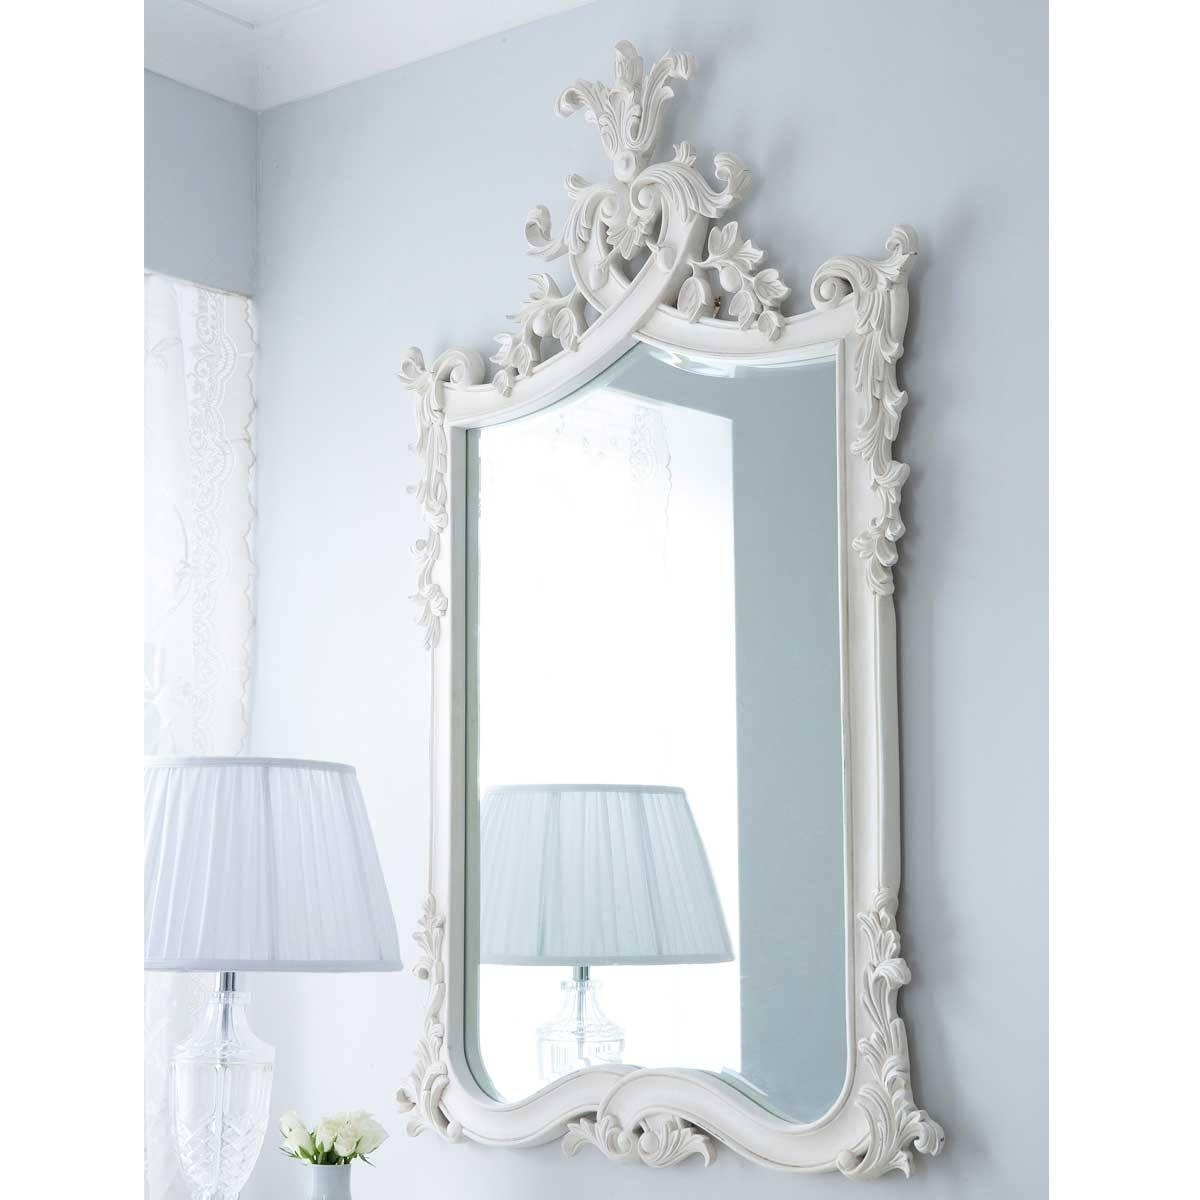 Provencal Heart Top White Mirror | Luxury Mirror In White French Mirror (Image 12 of 20)